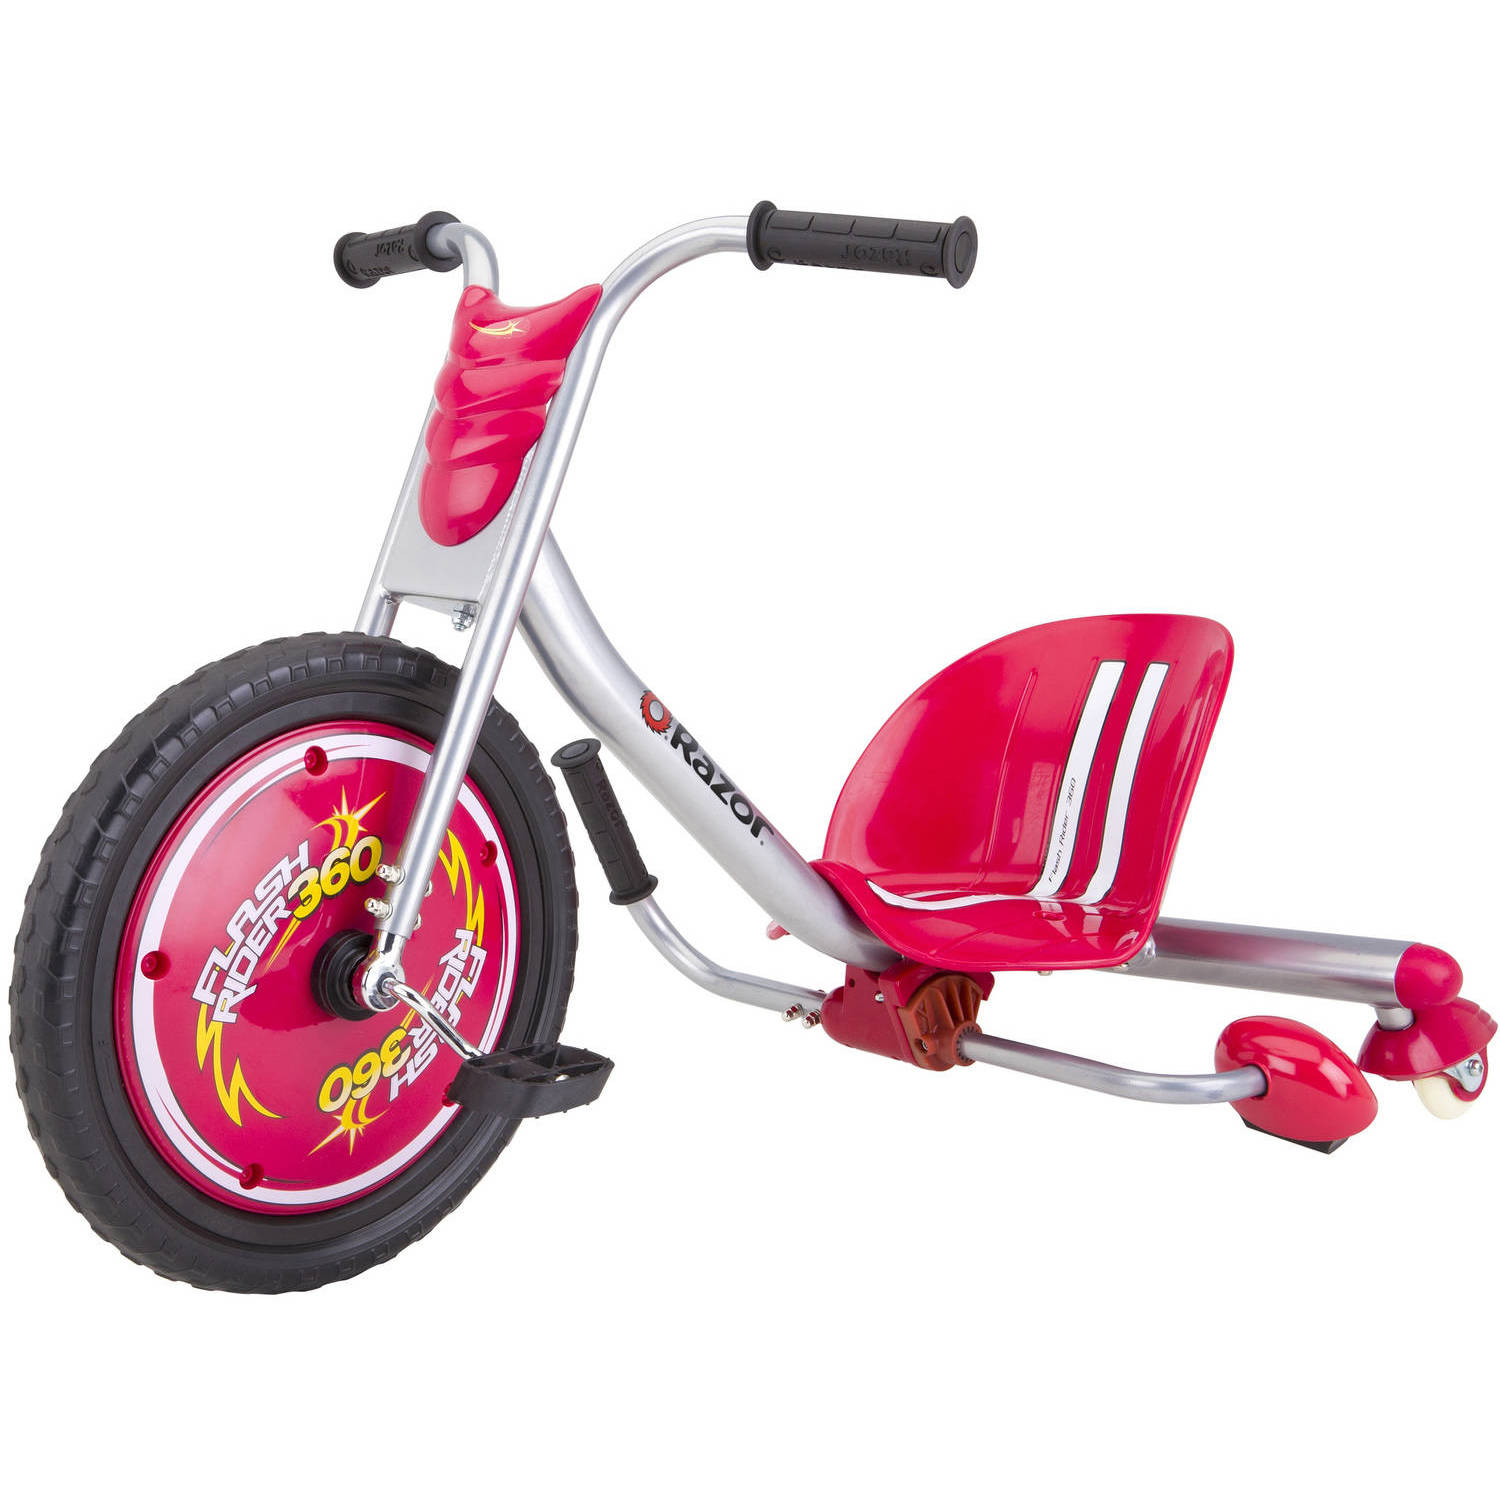 Razor Flash Rider 360 Trike Ride-On, Red